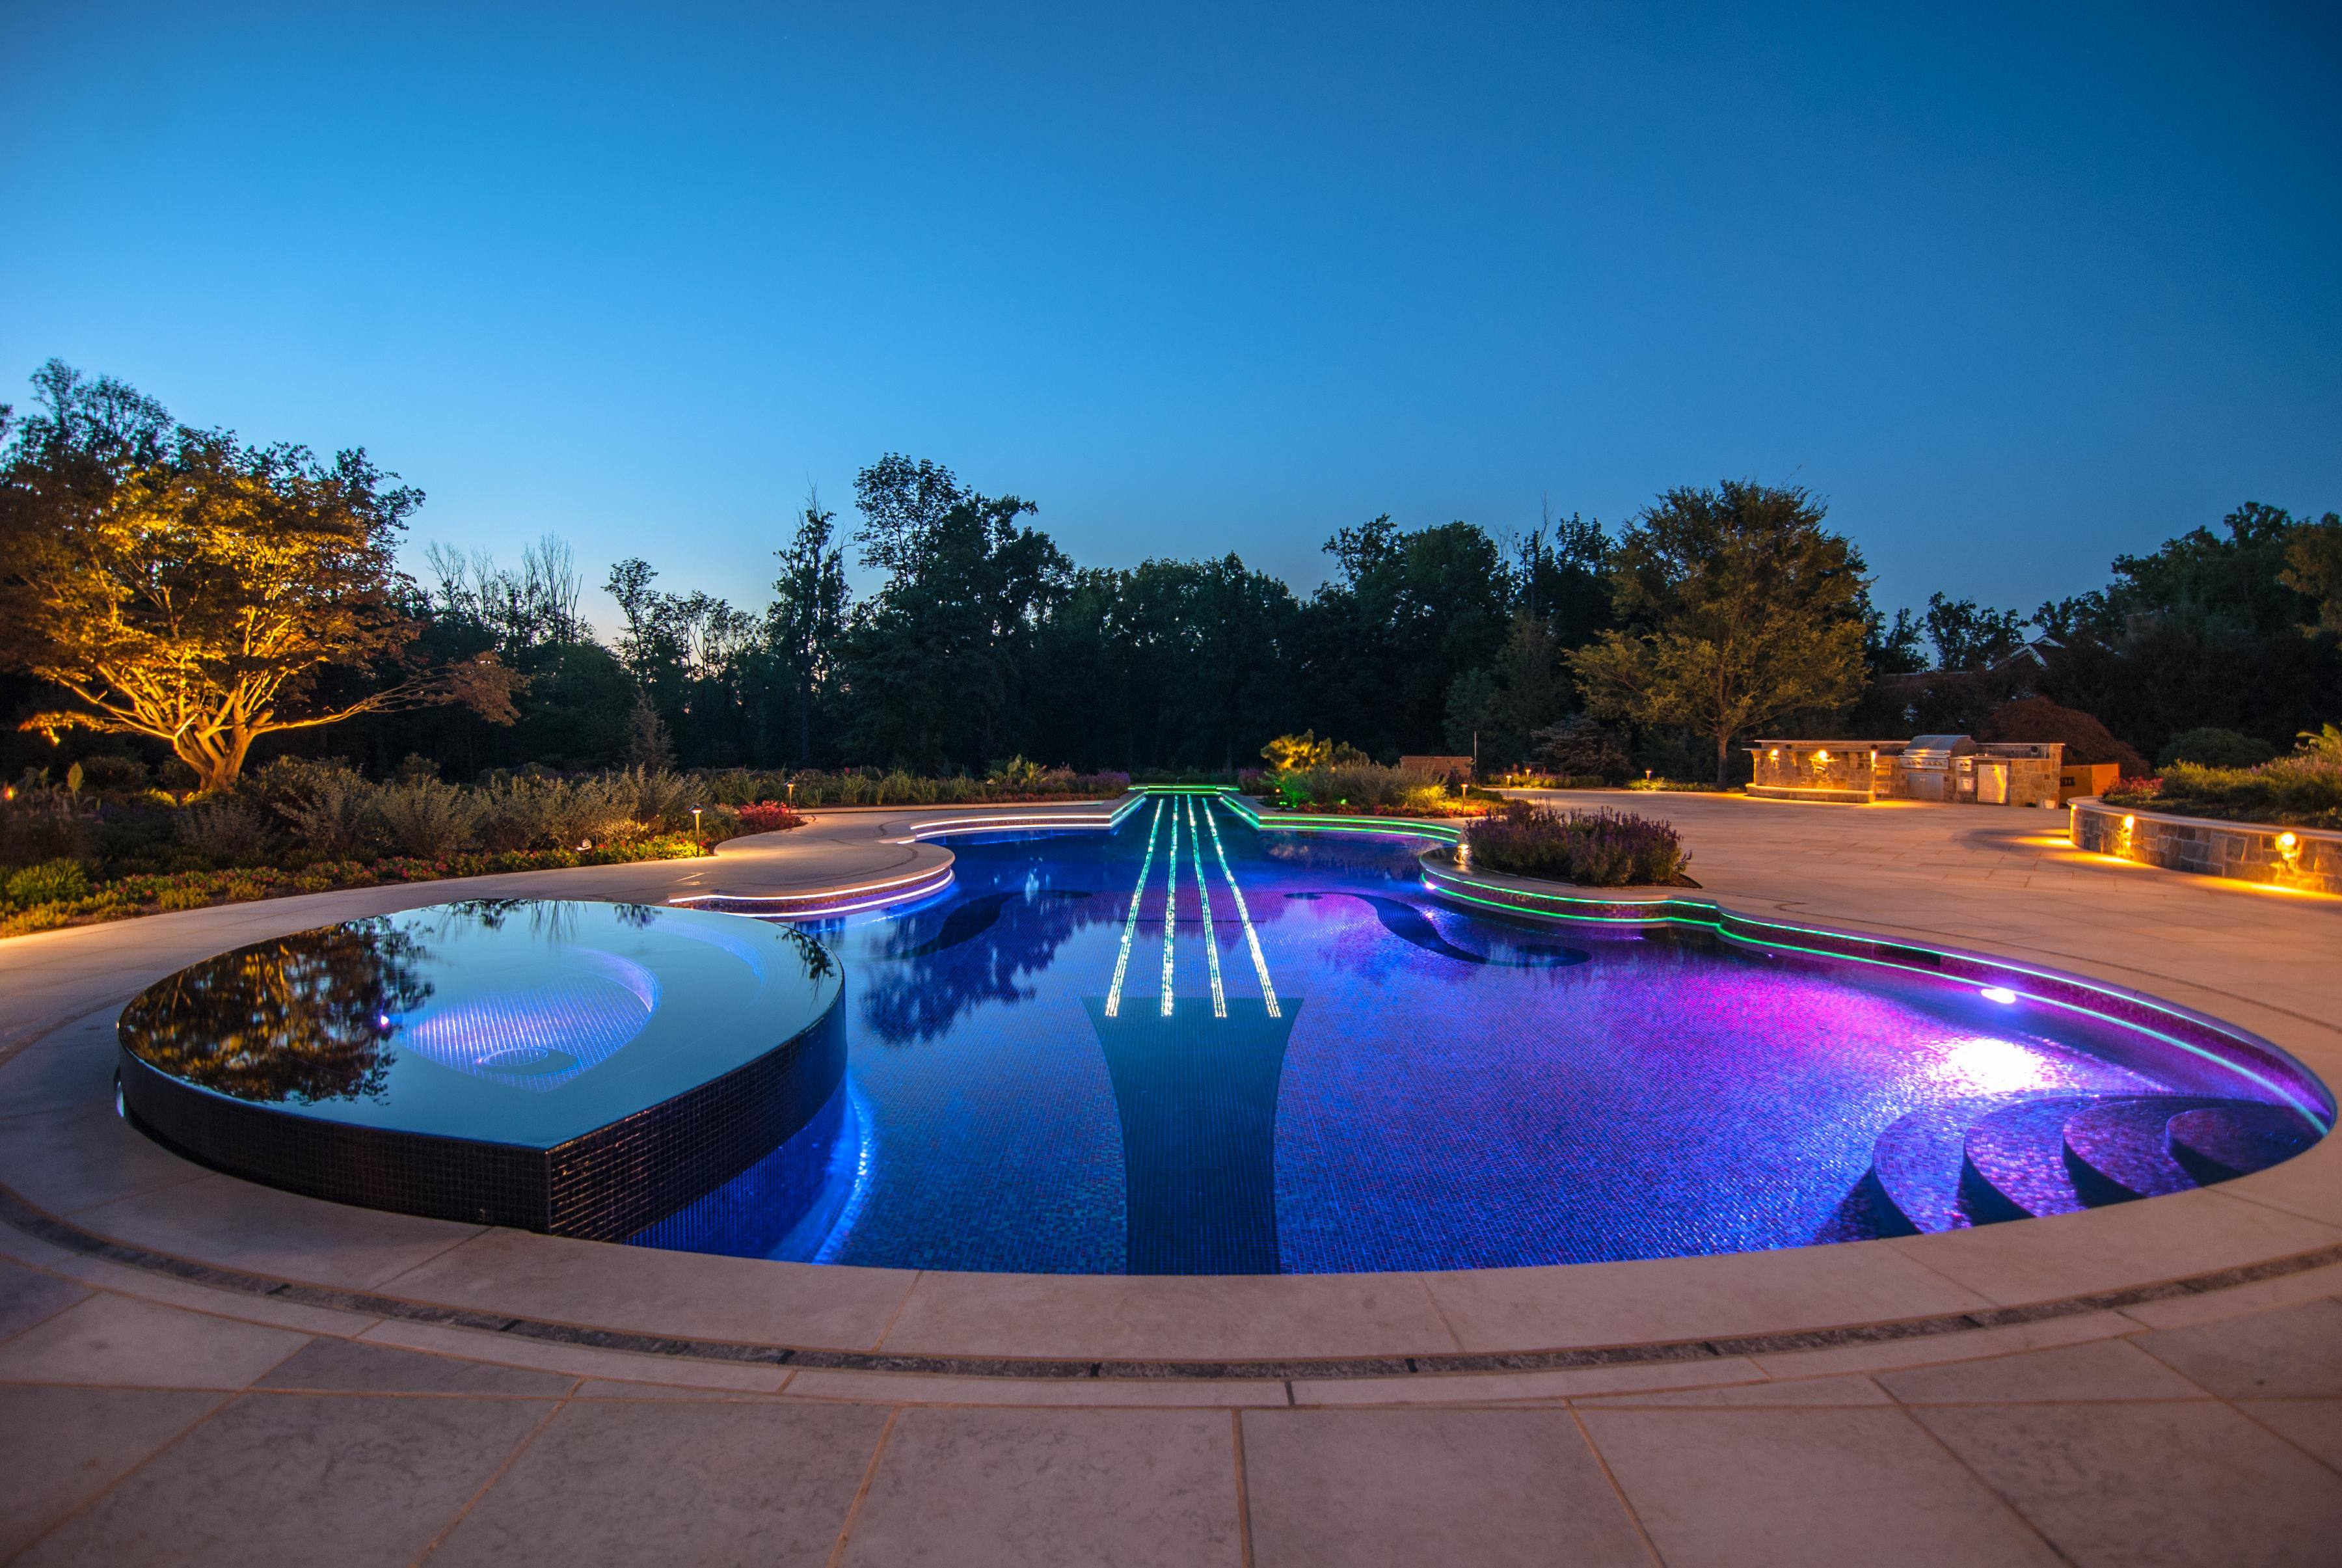 Westchester county ny inground swimming pool wins 2013 - Swim pool designs ...